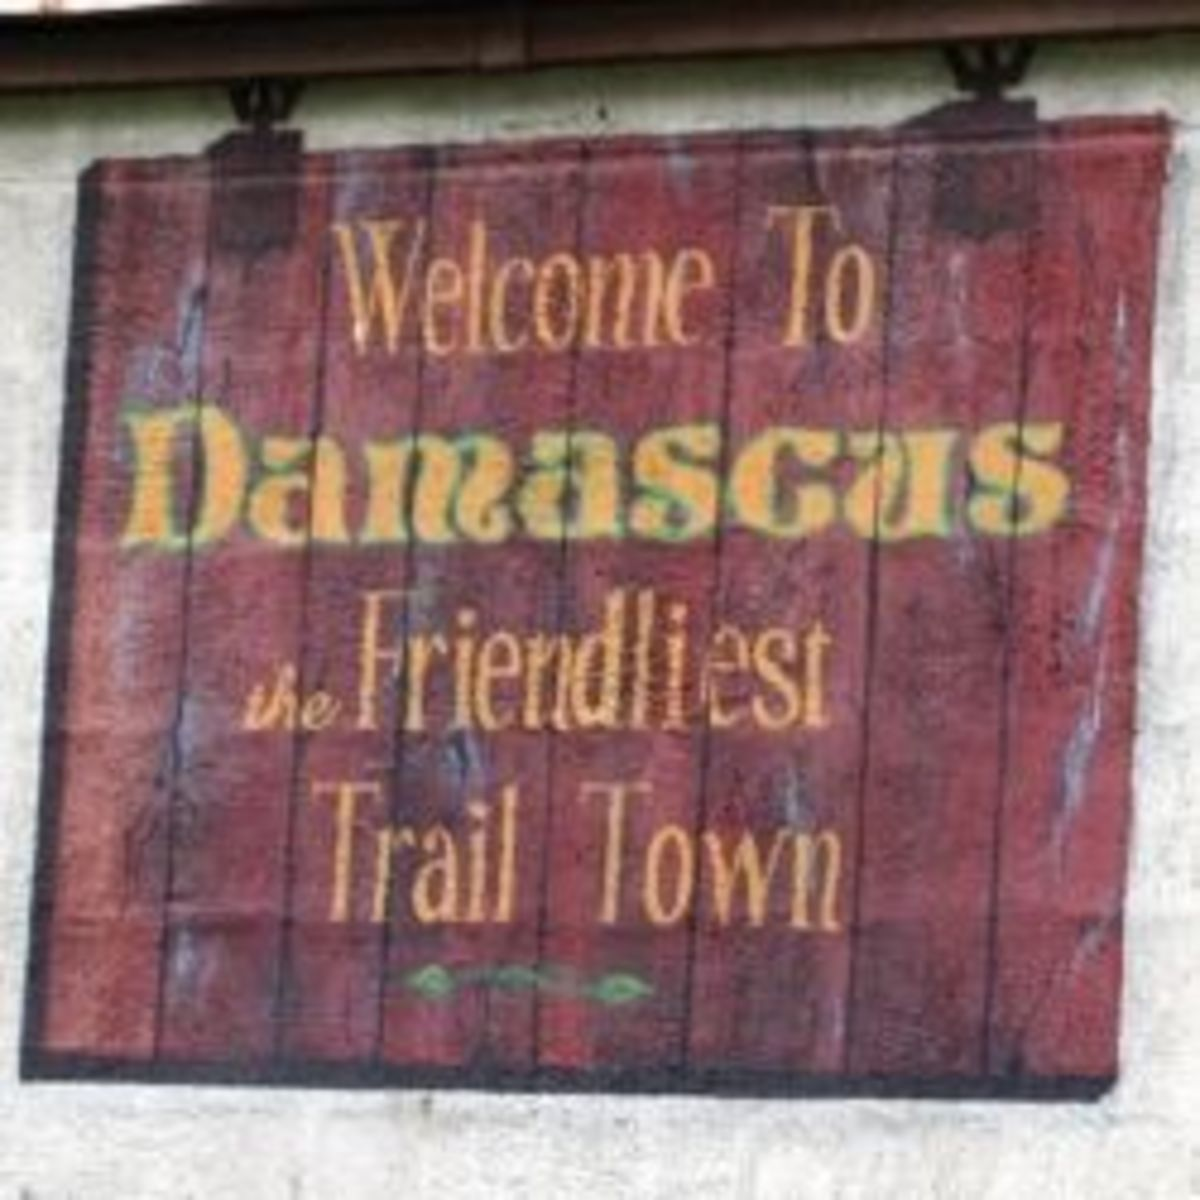 Damascus--The Friendliest Town on the Appalachian Trail